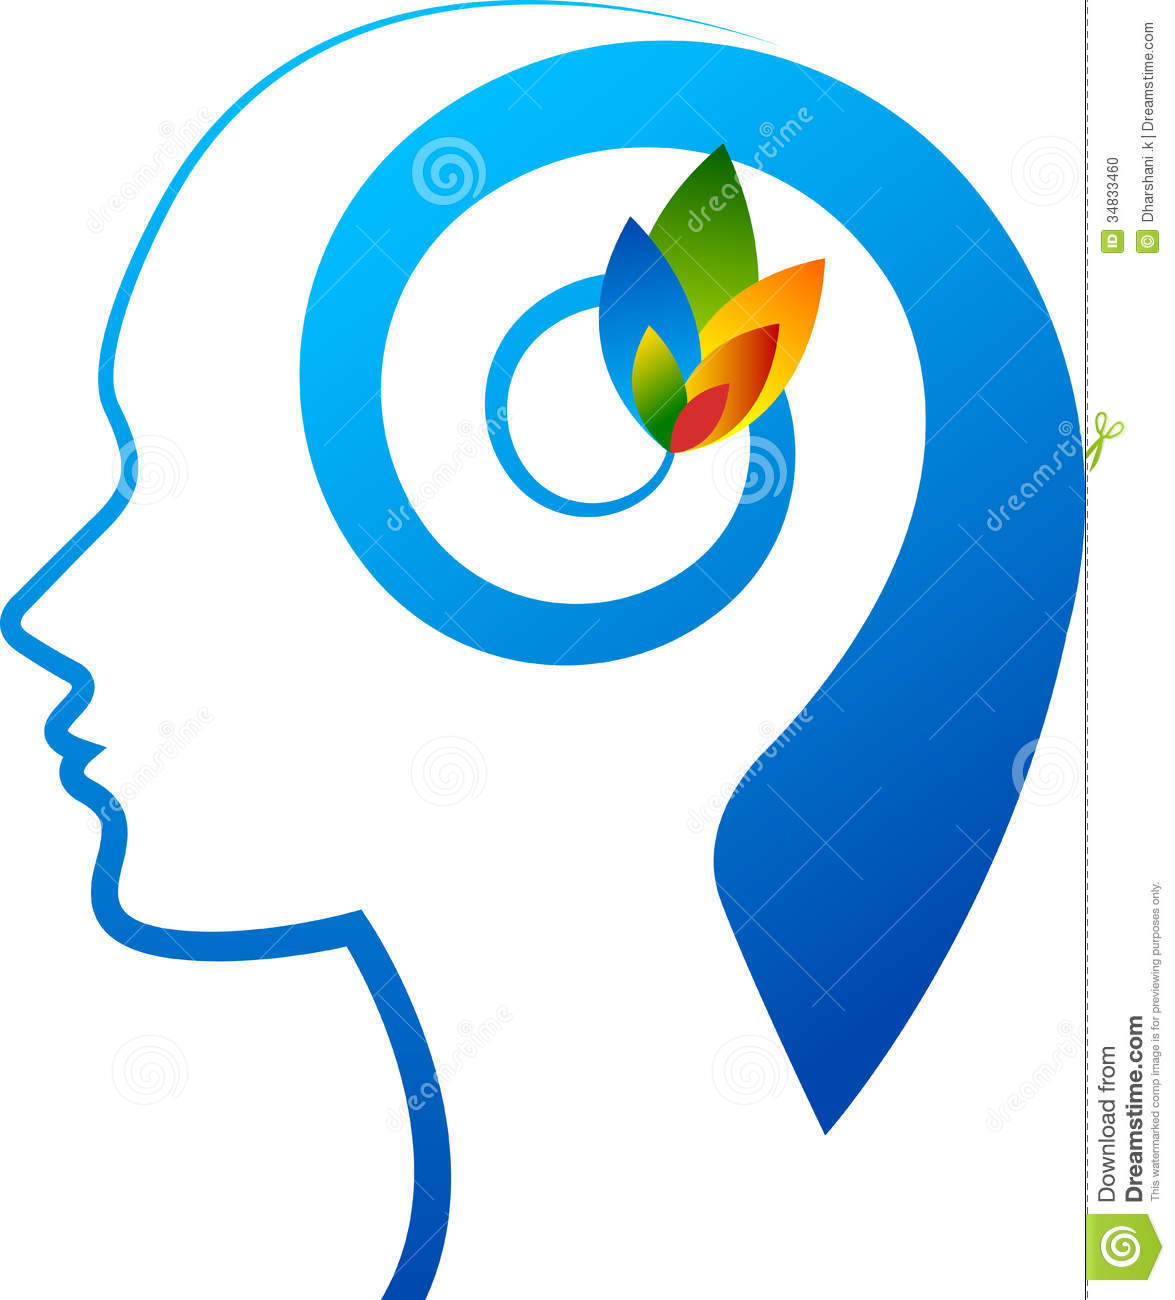 Illustration art of a mind flower logo with isolated background.